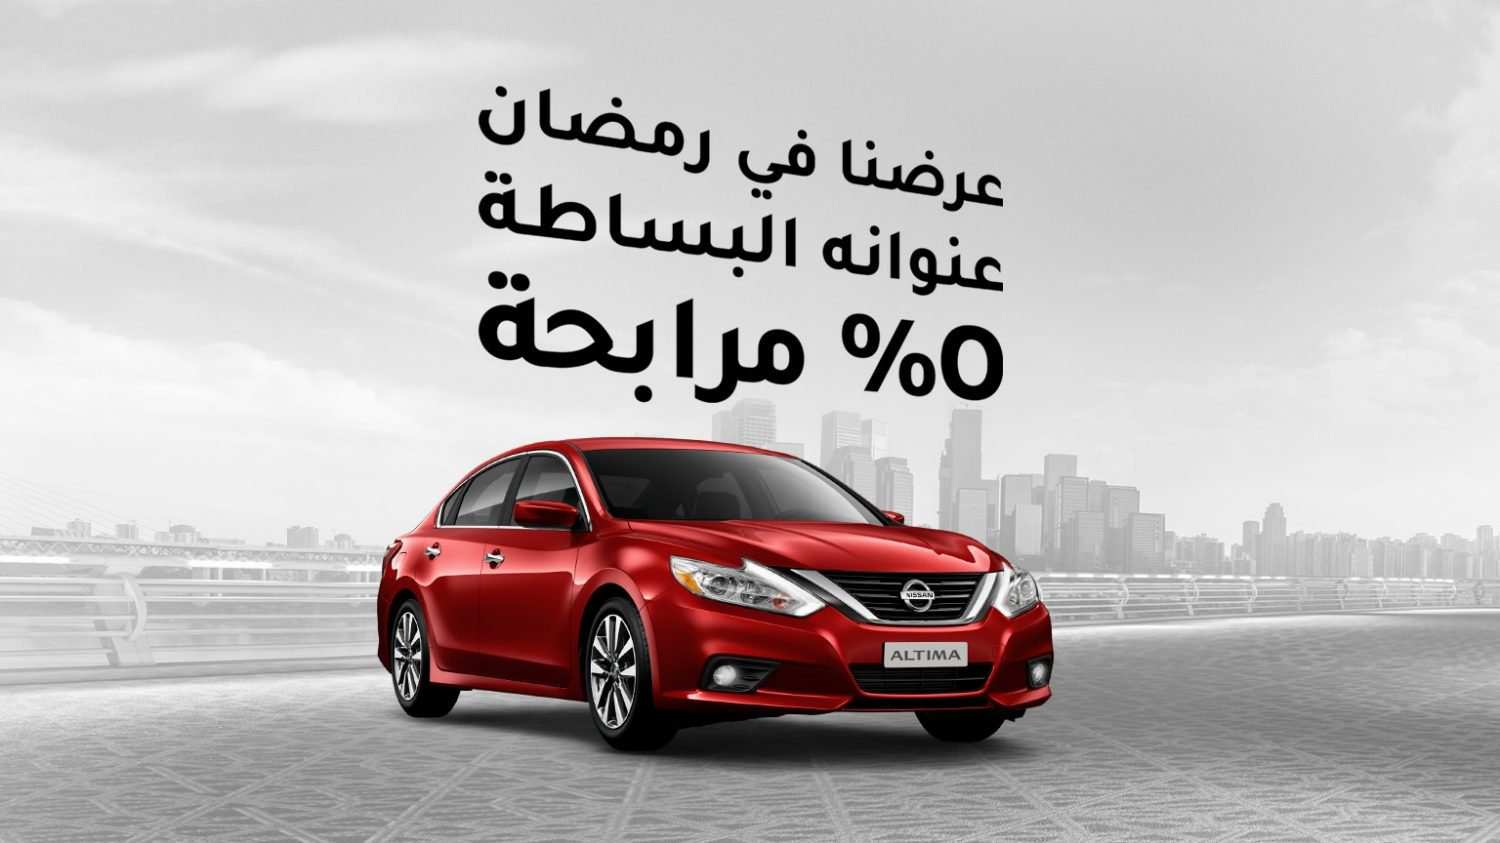 2018 Nissan Altima Ramadan Offers